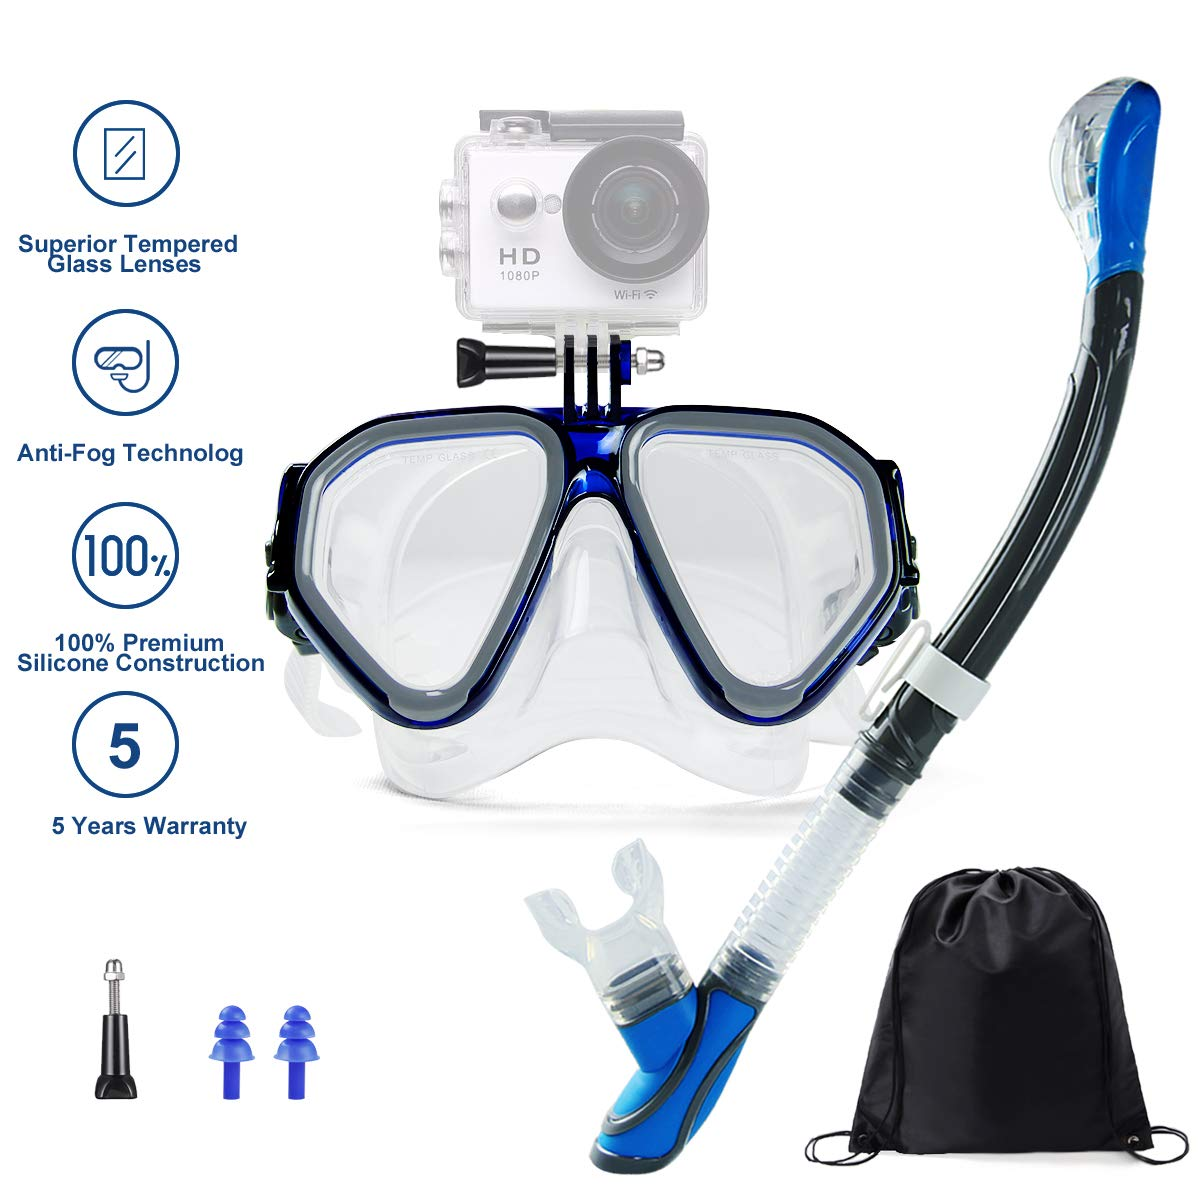 Ufanore Snorkel Set, Dry Top Snorkel, Panoramic Wide View, Free Breathing Anti-Leak&Anti-Fog, Scuba Diving Mask for Adults&Youth by Ufanore